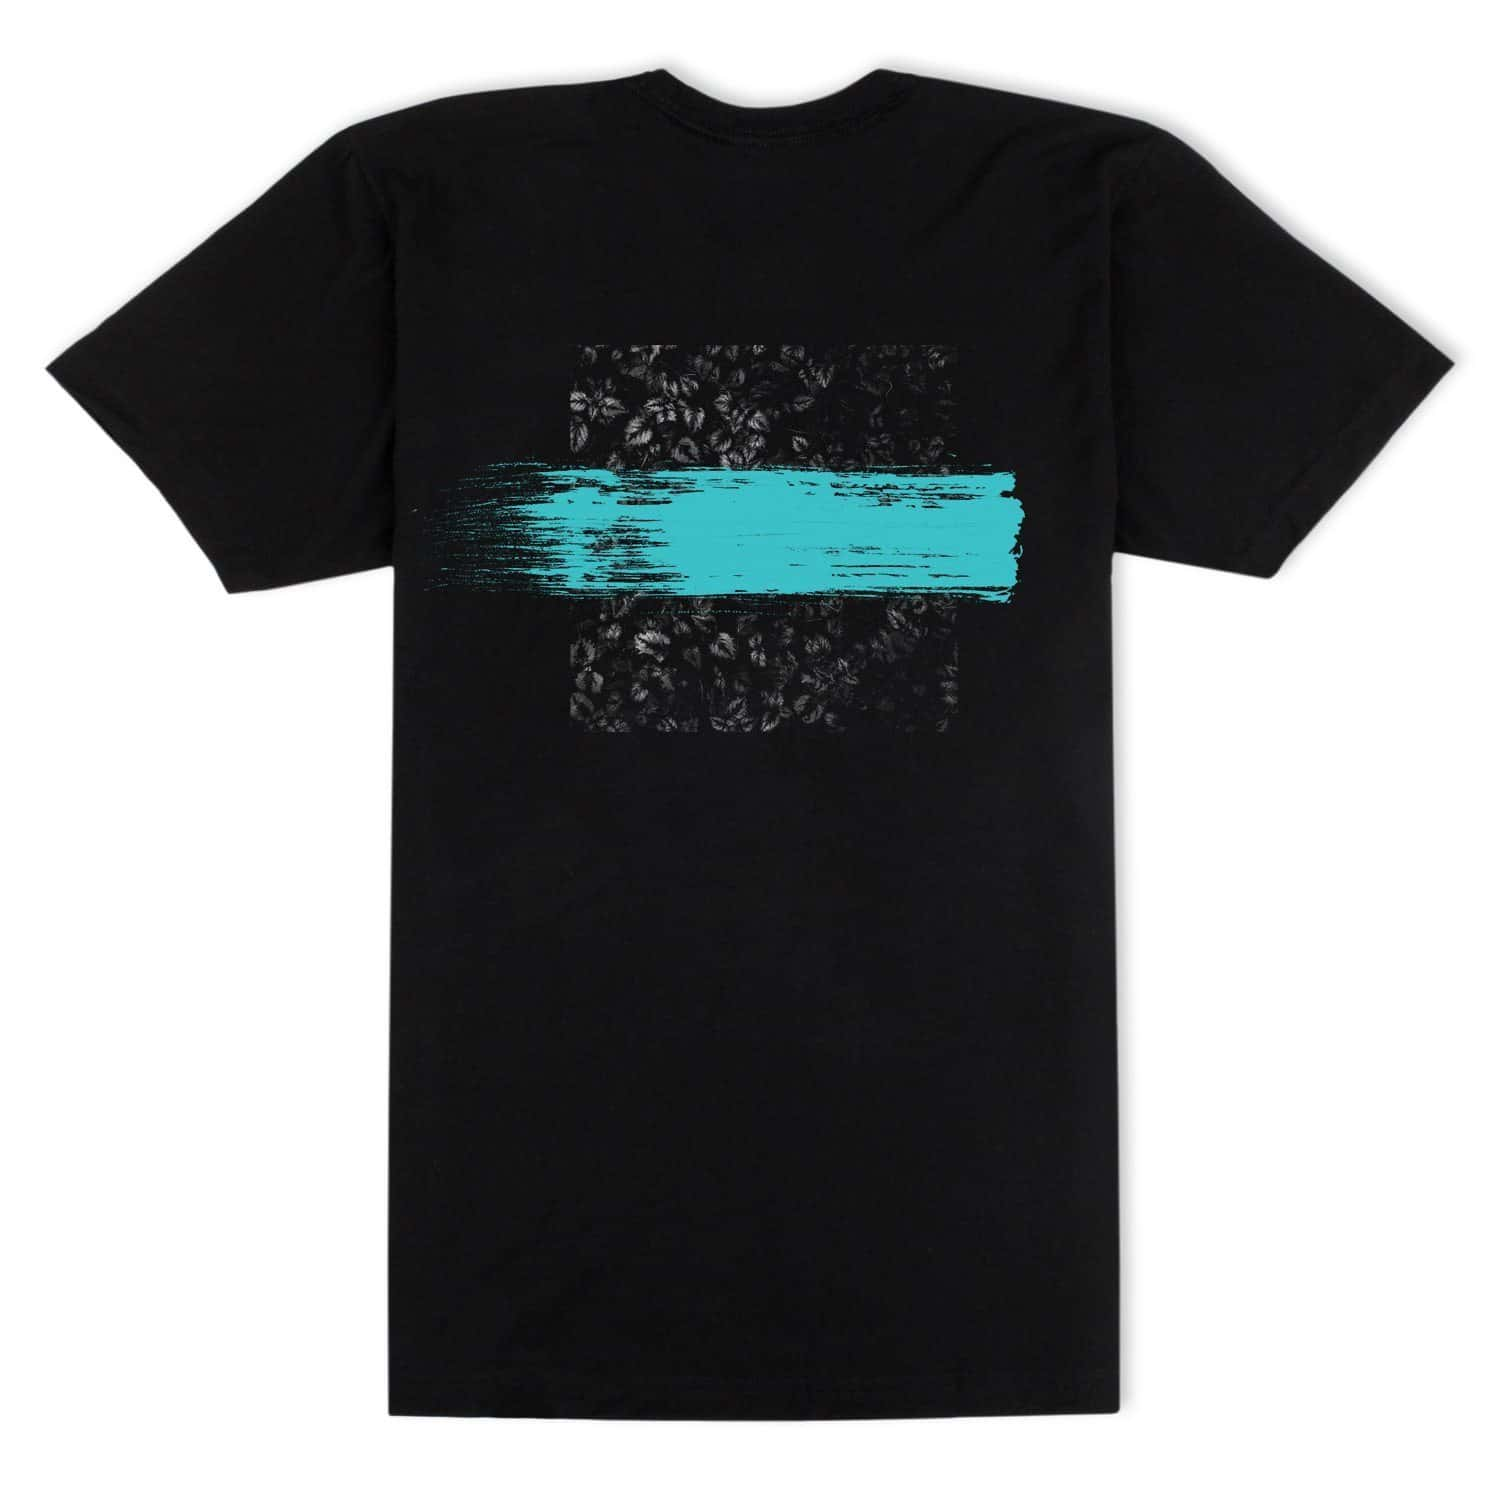 Tedashii 'This Time Around' T-Shirt